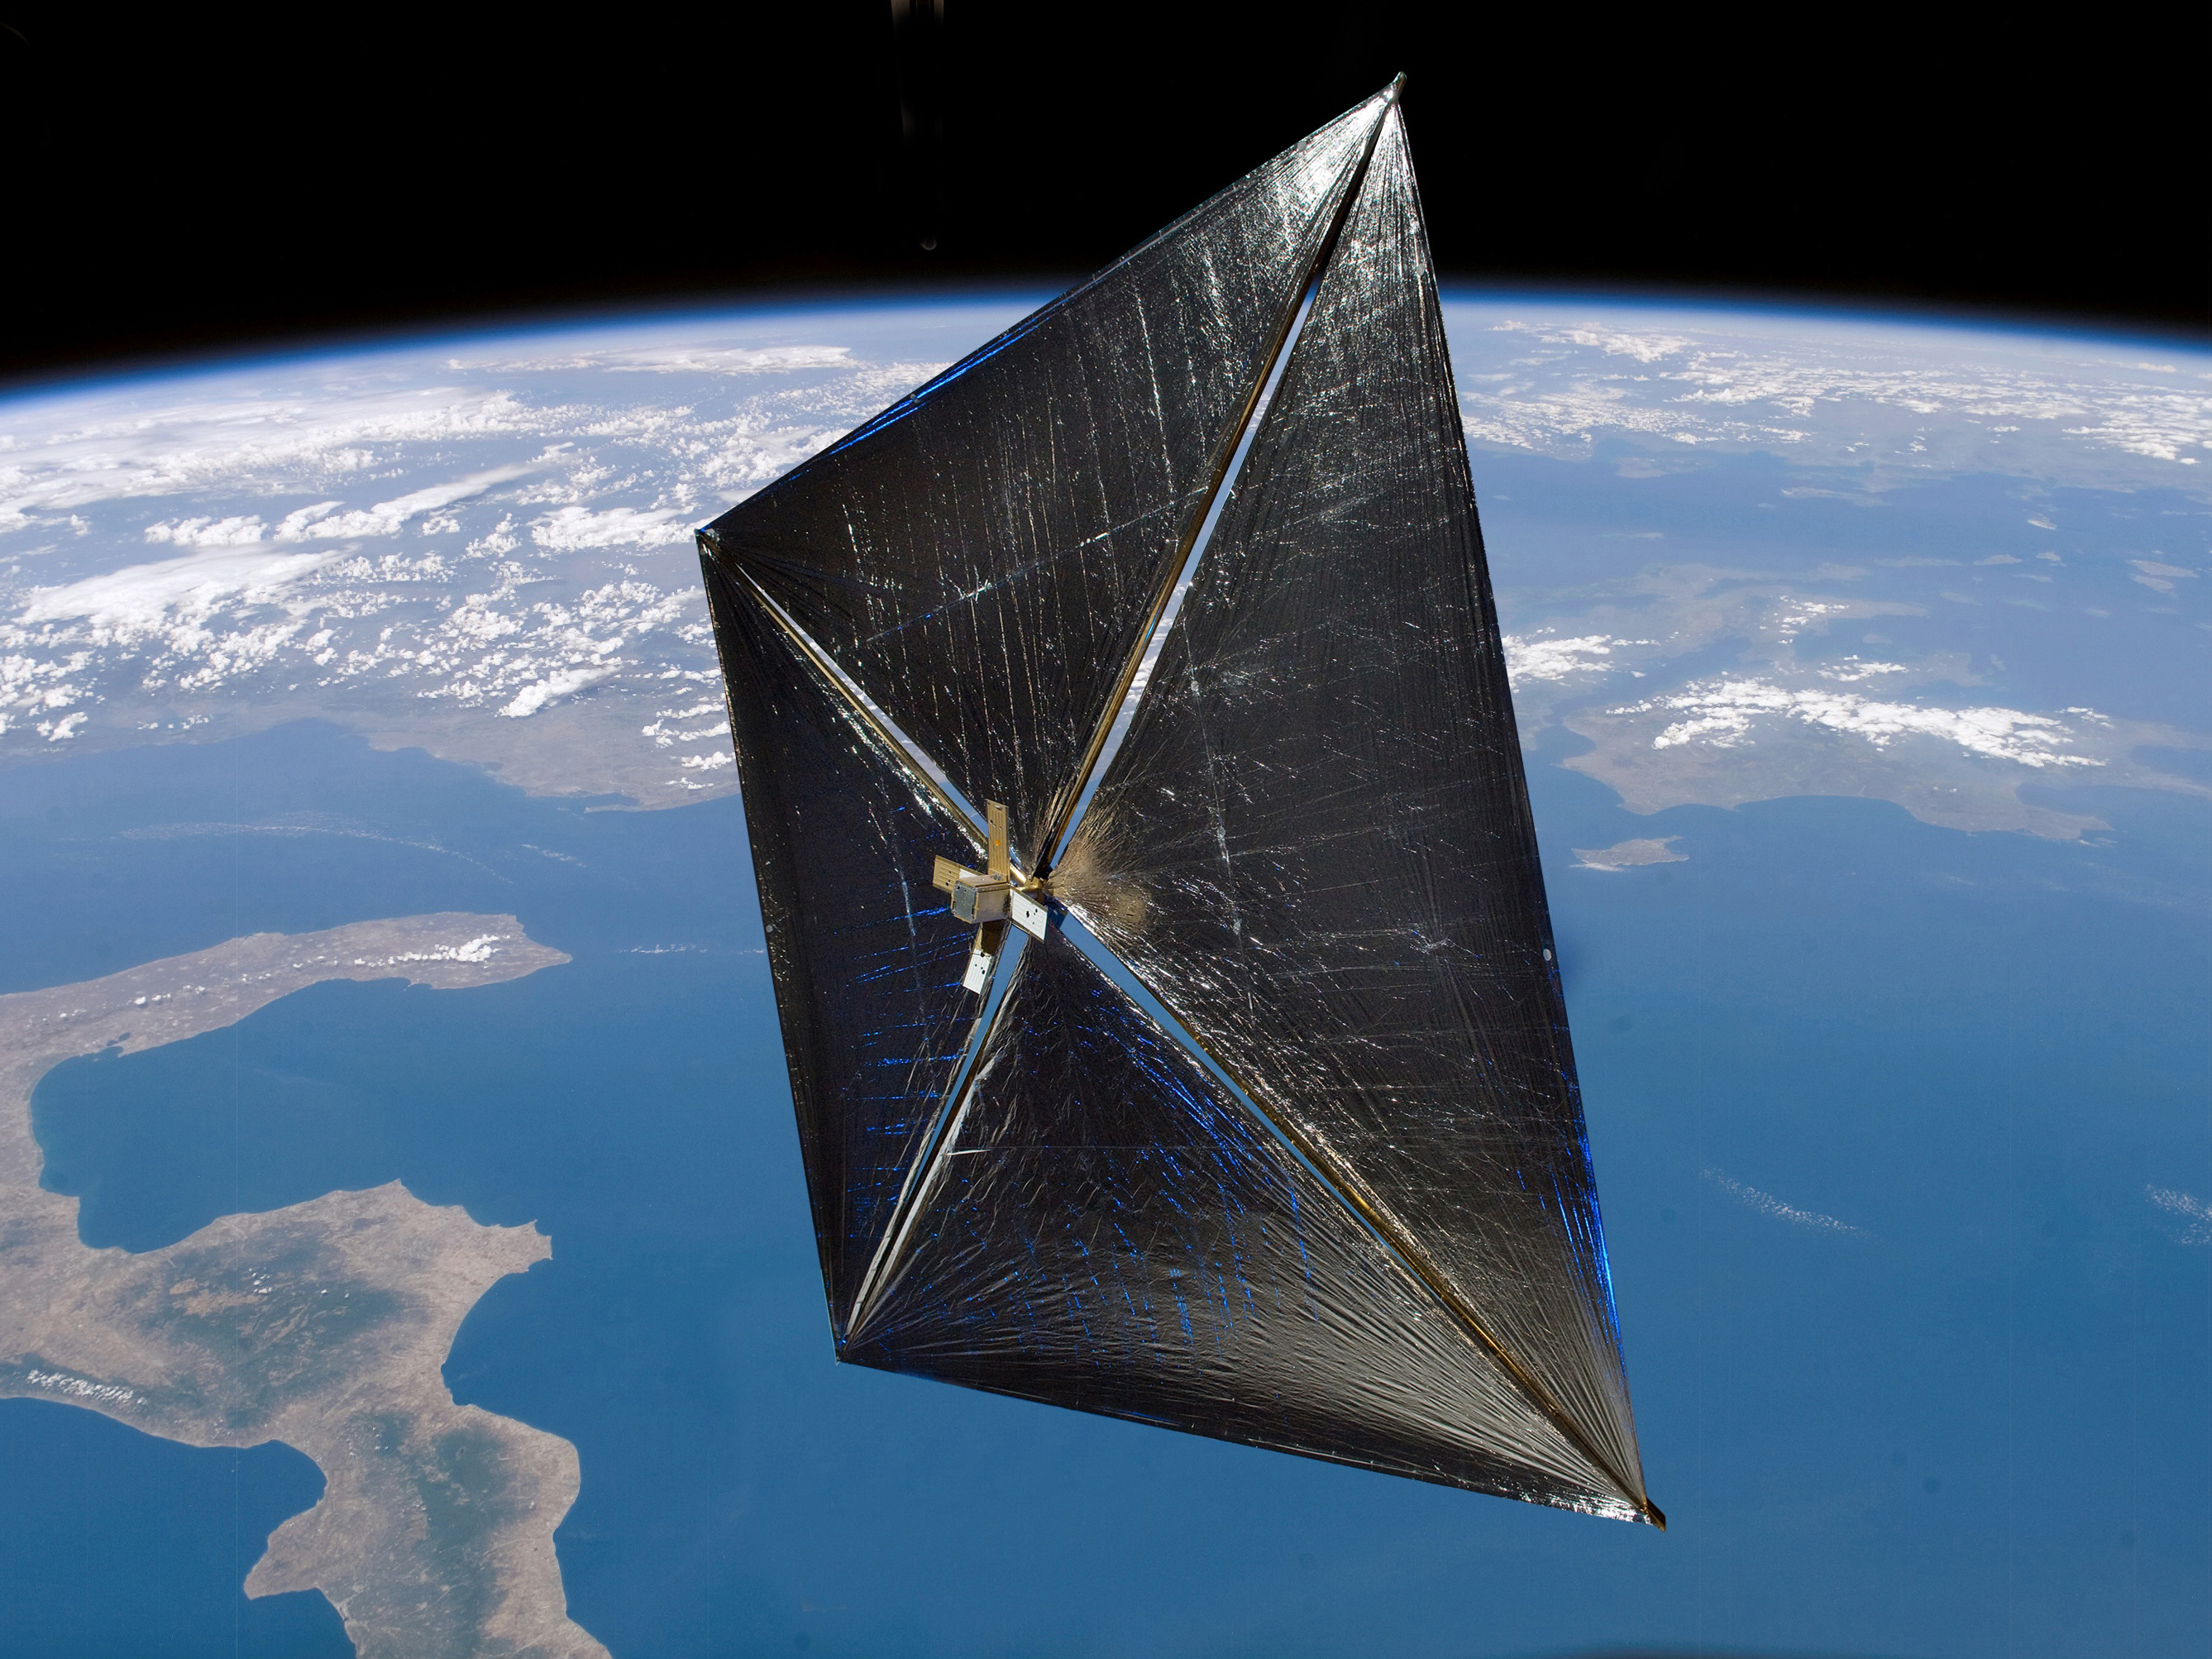 Artist's depiction of NASA's NanoSail-D2 solar sail-powered cubesat in Earth orbit. Credit: NASA